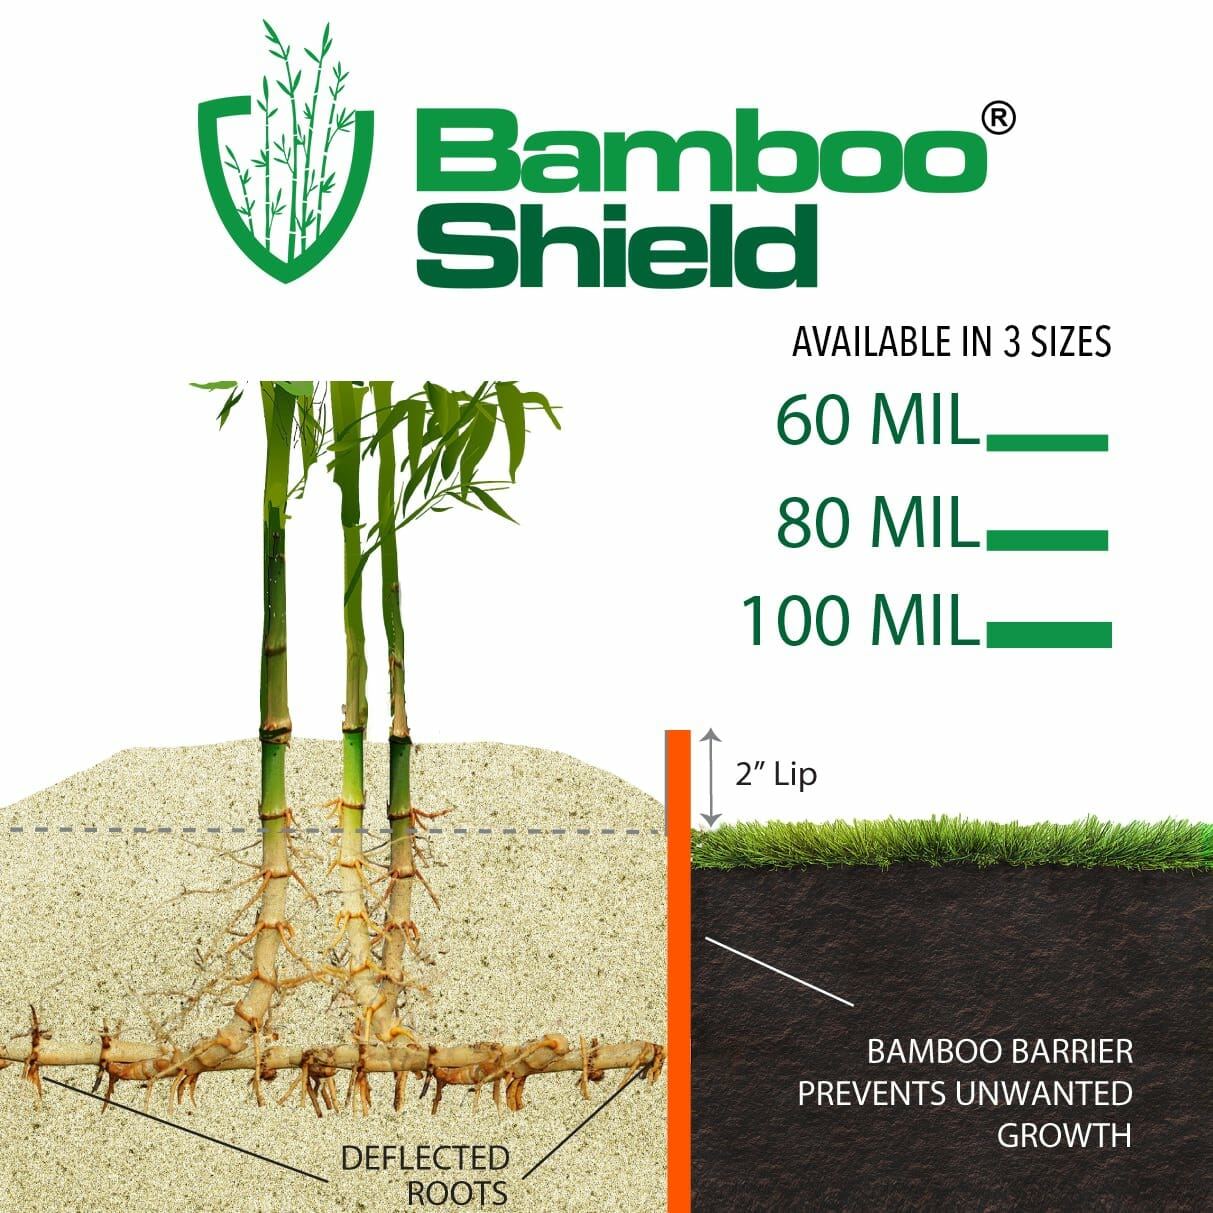 Bamboo Shield diagram and thickness view of 60 mil, 80 mil, and 100 mil.